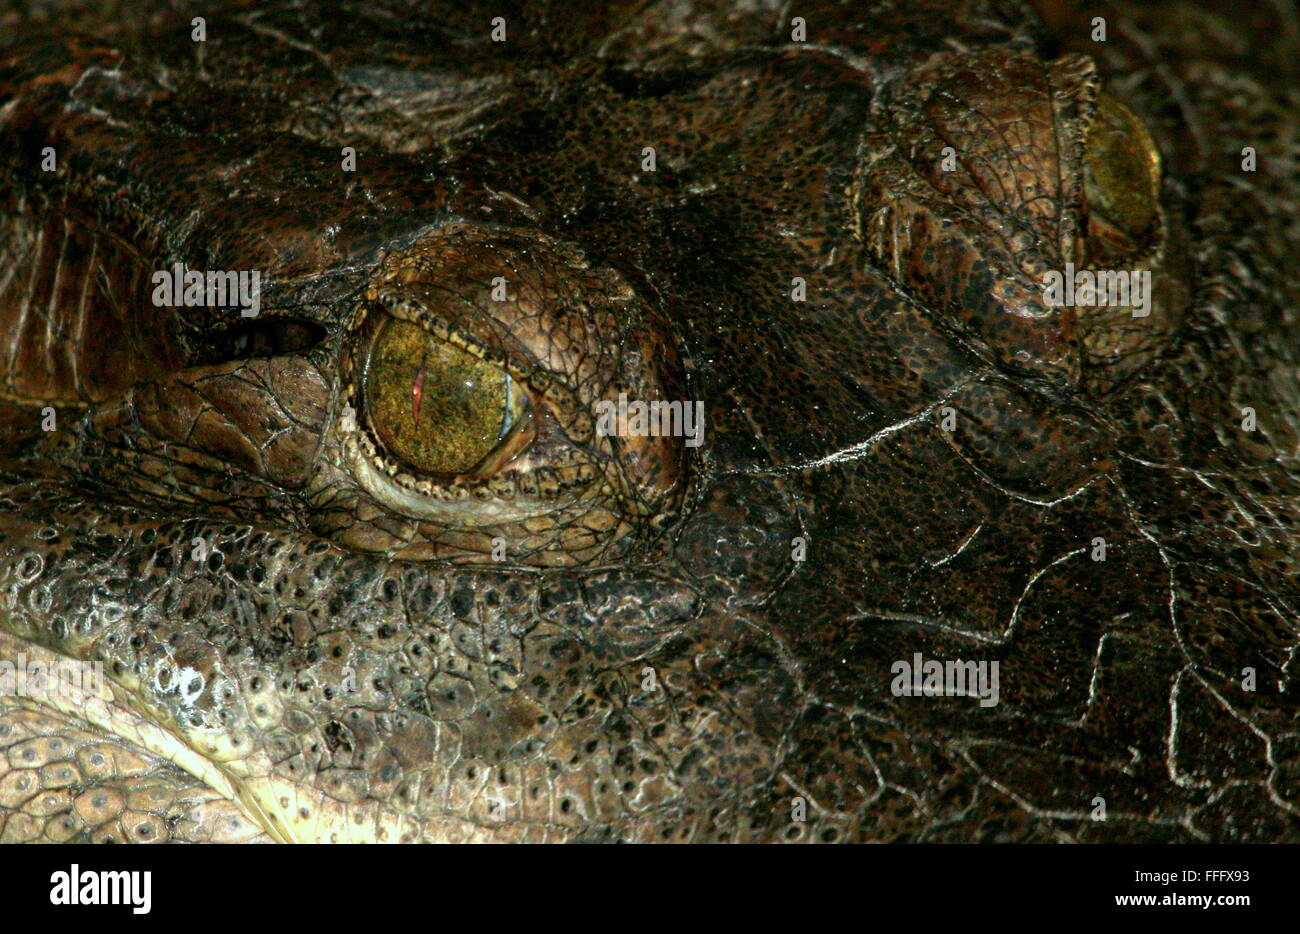 African Slender snouted crocodile (Mecistops cataphractus) extreme close-up of the reptilian eyes Stock Photo